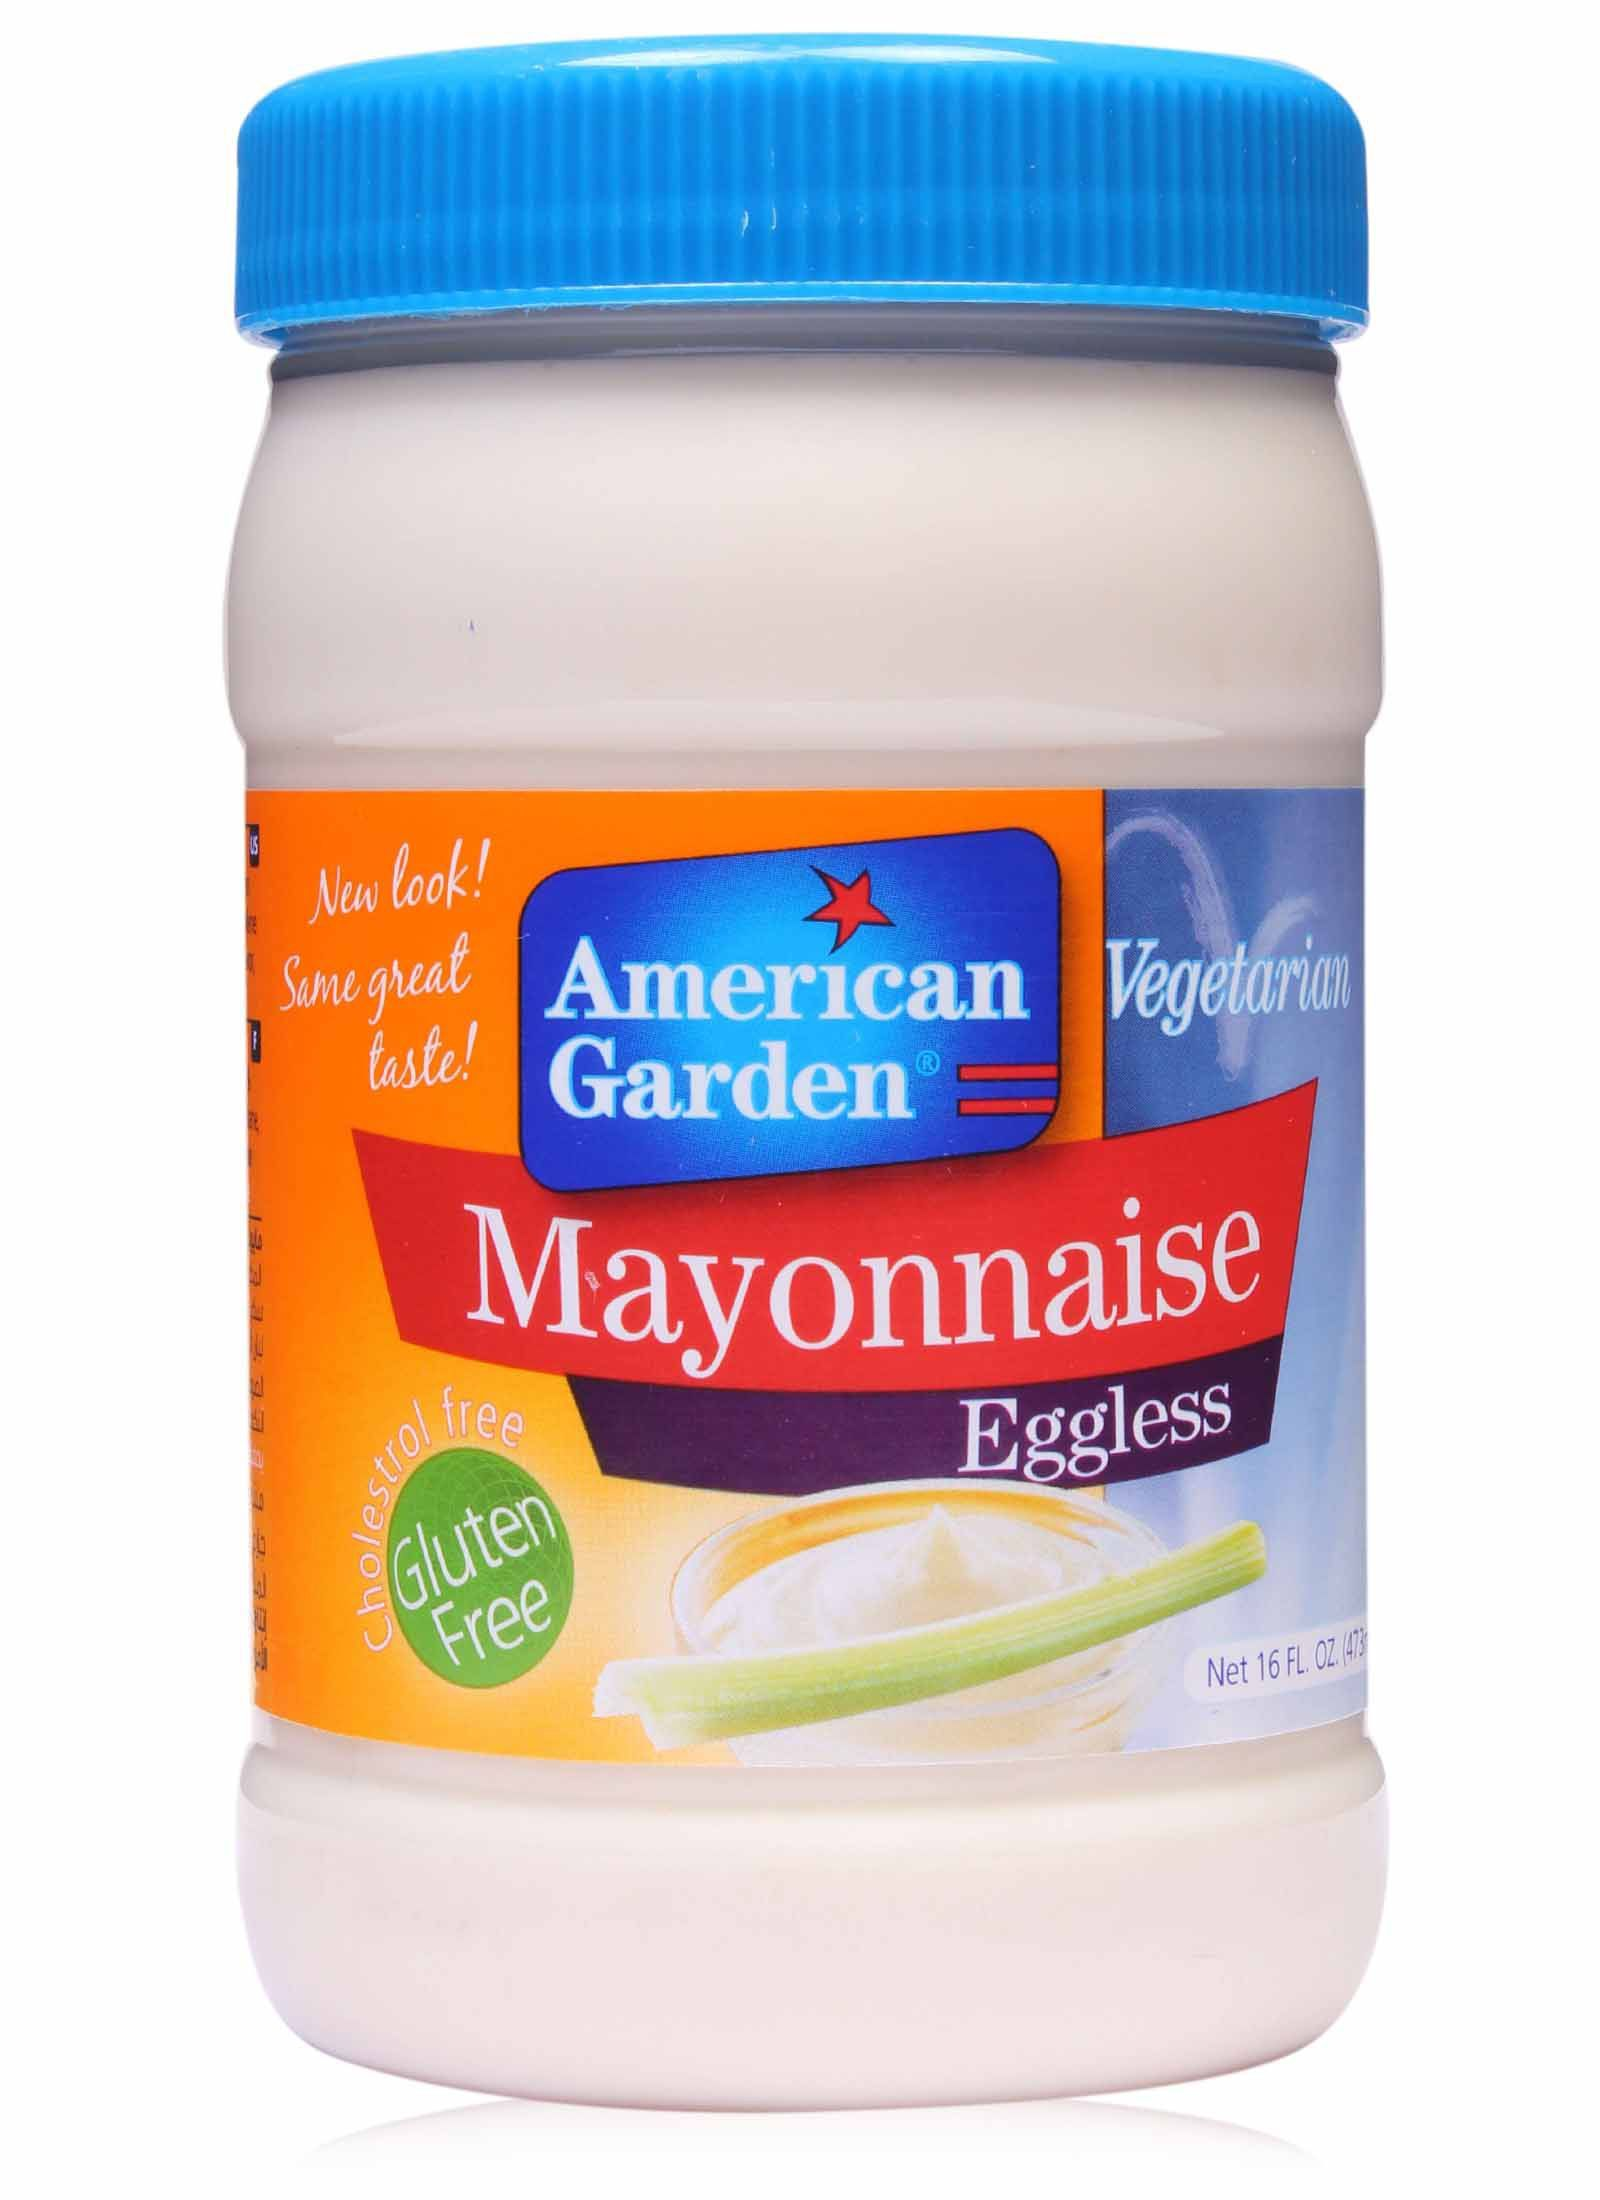 American Garden Eggless Mayonnaise Online in India, Buy at Best Price ... - Are you looking for the best garden tools and ideas online? Visit us today at: onlinepatiolawngardenstore.com